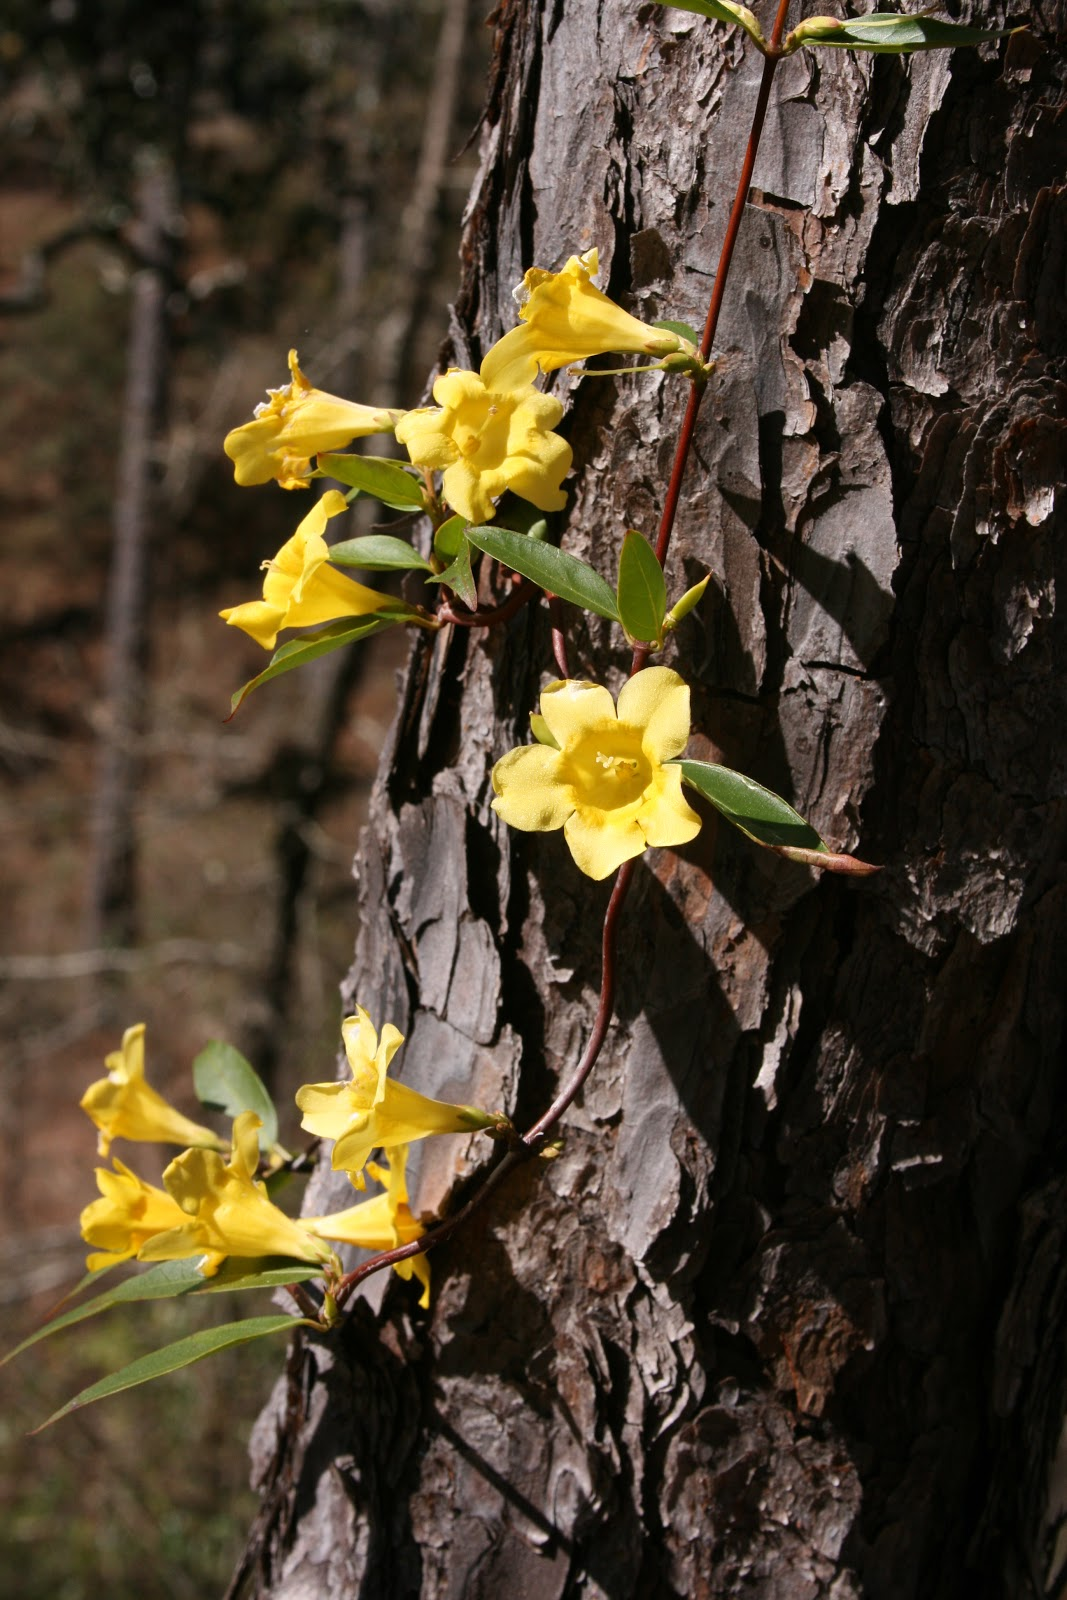 Native Florida Wildflowers Yellowcarolina Jessamine Gelsemium